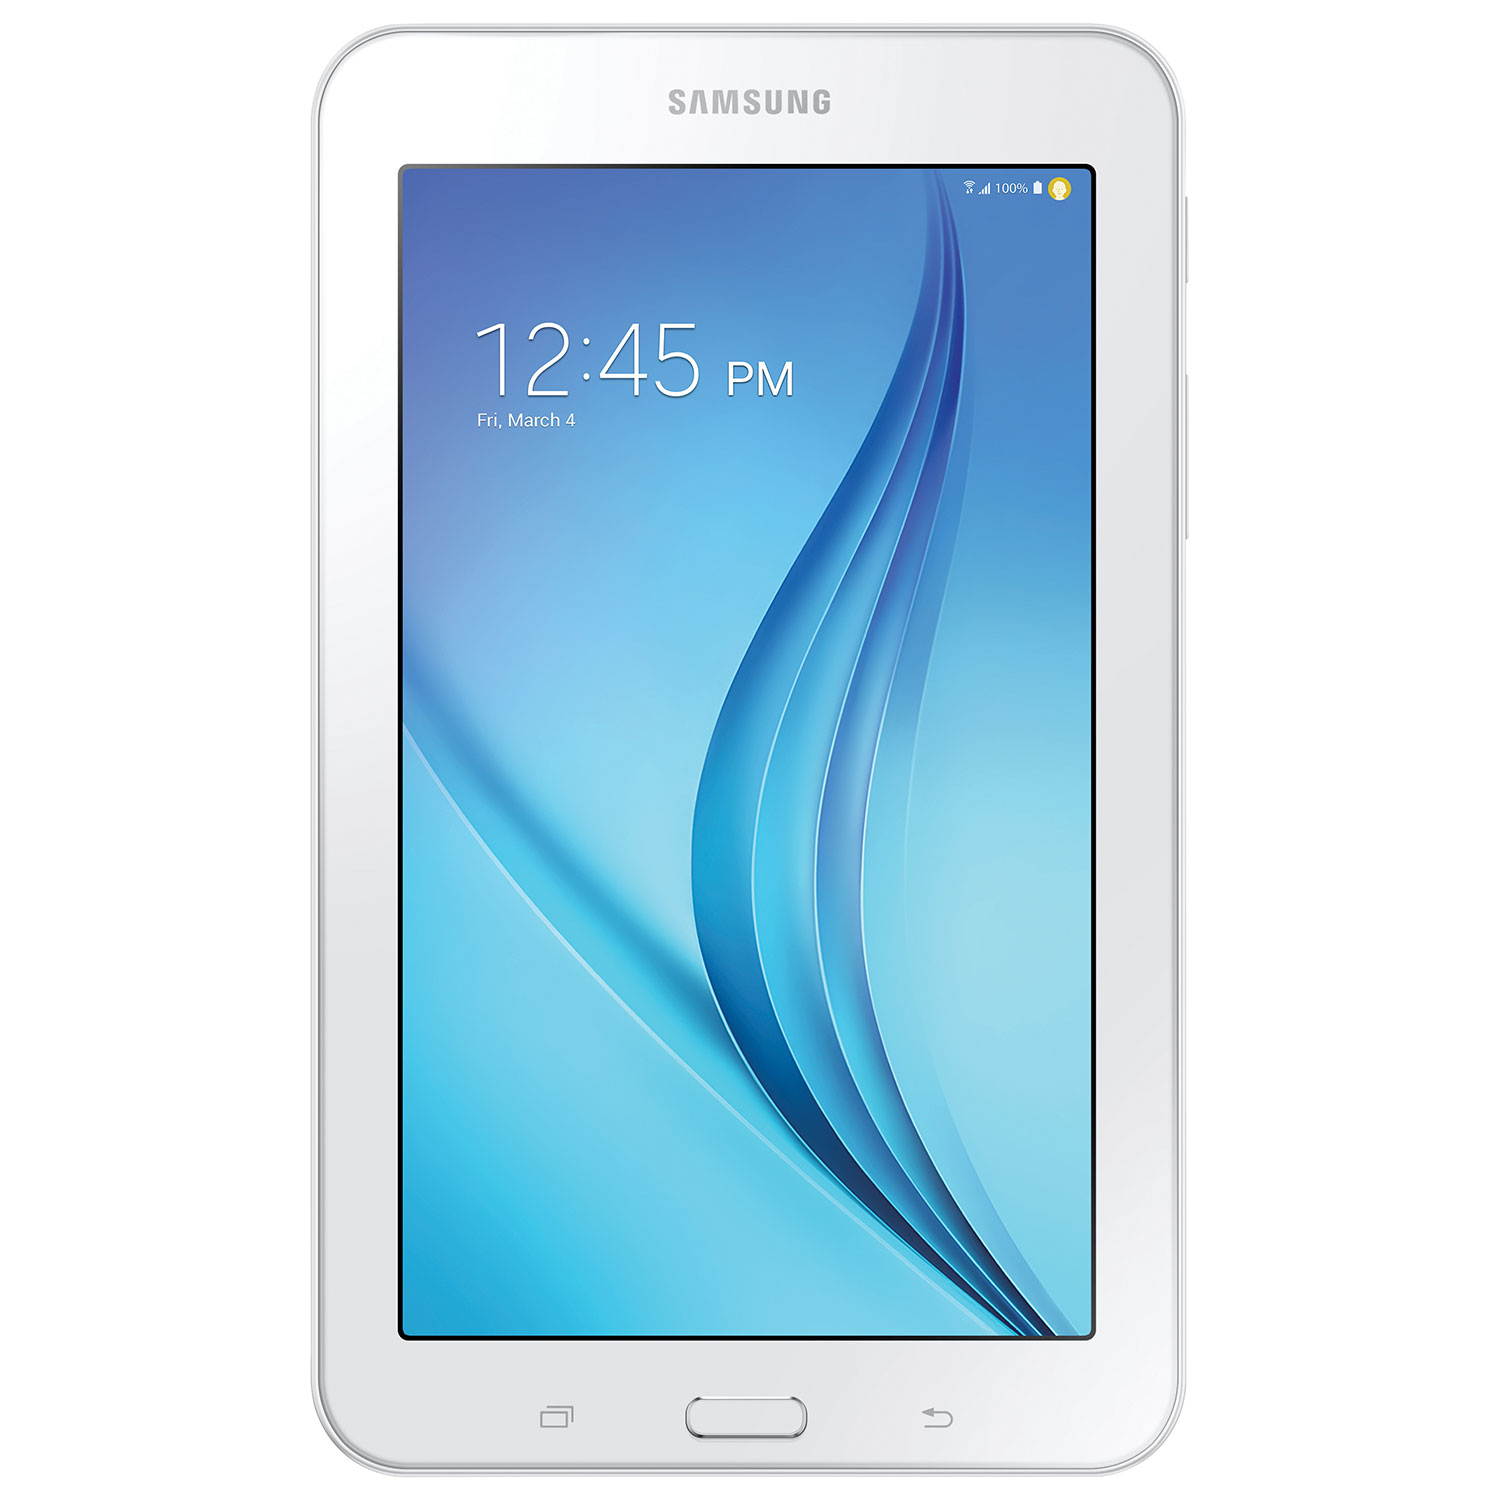 samsung galaxy tab lite android tablet with spreadtrum accent tablette shark quad core processor white tablets best target table drop down dining tables toronto bamboo small round